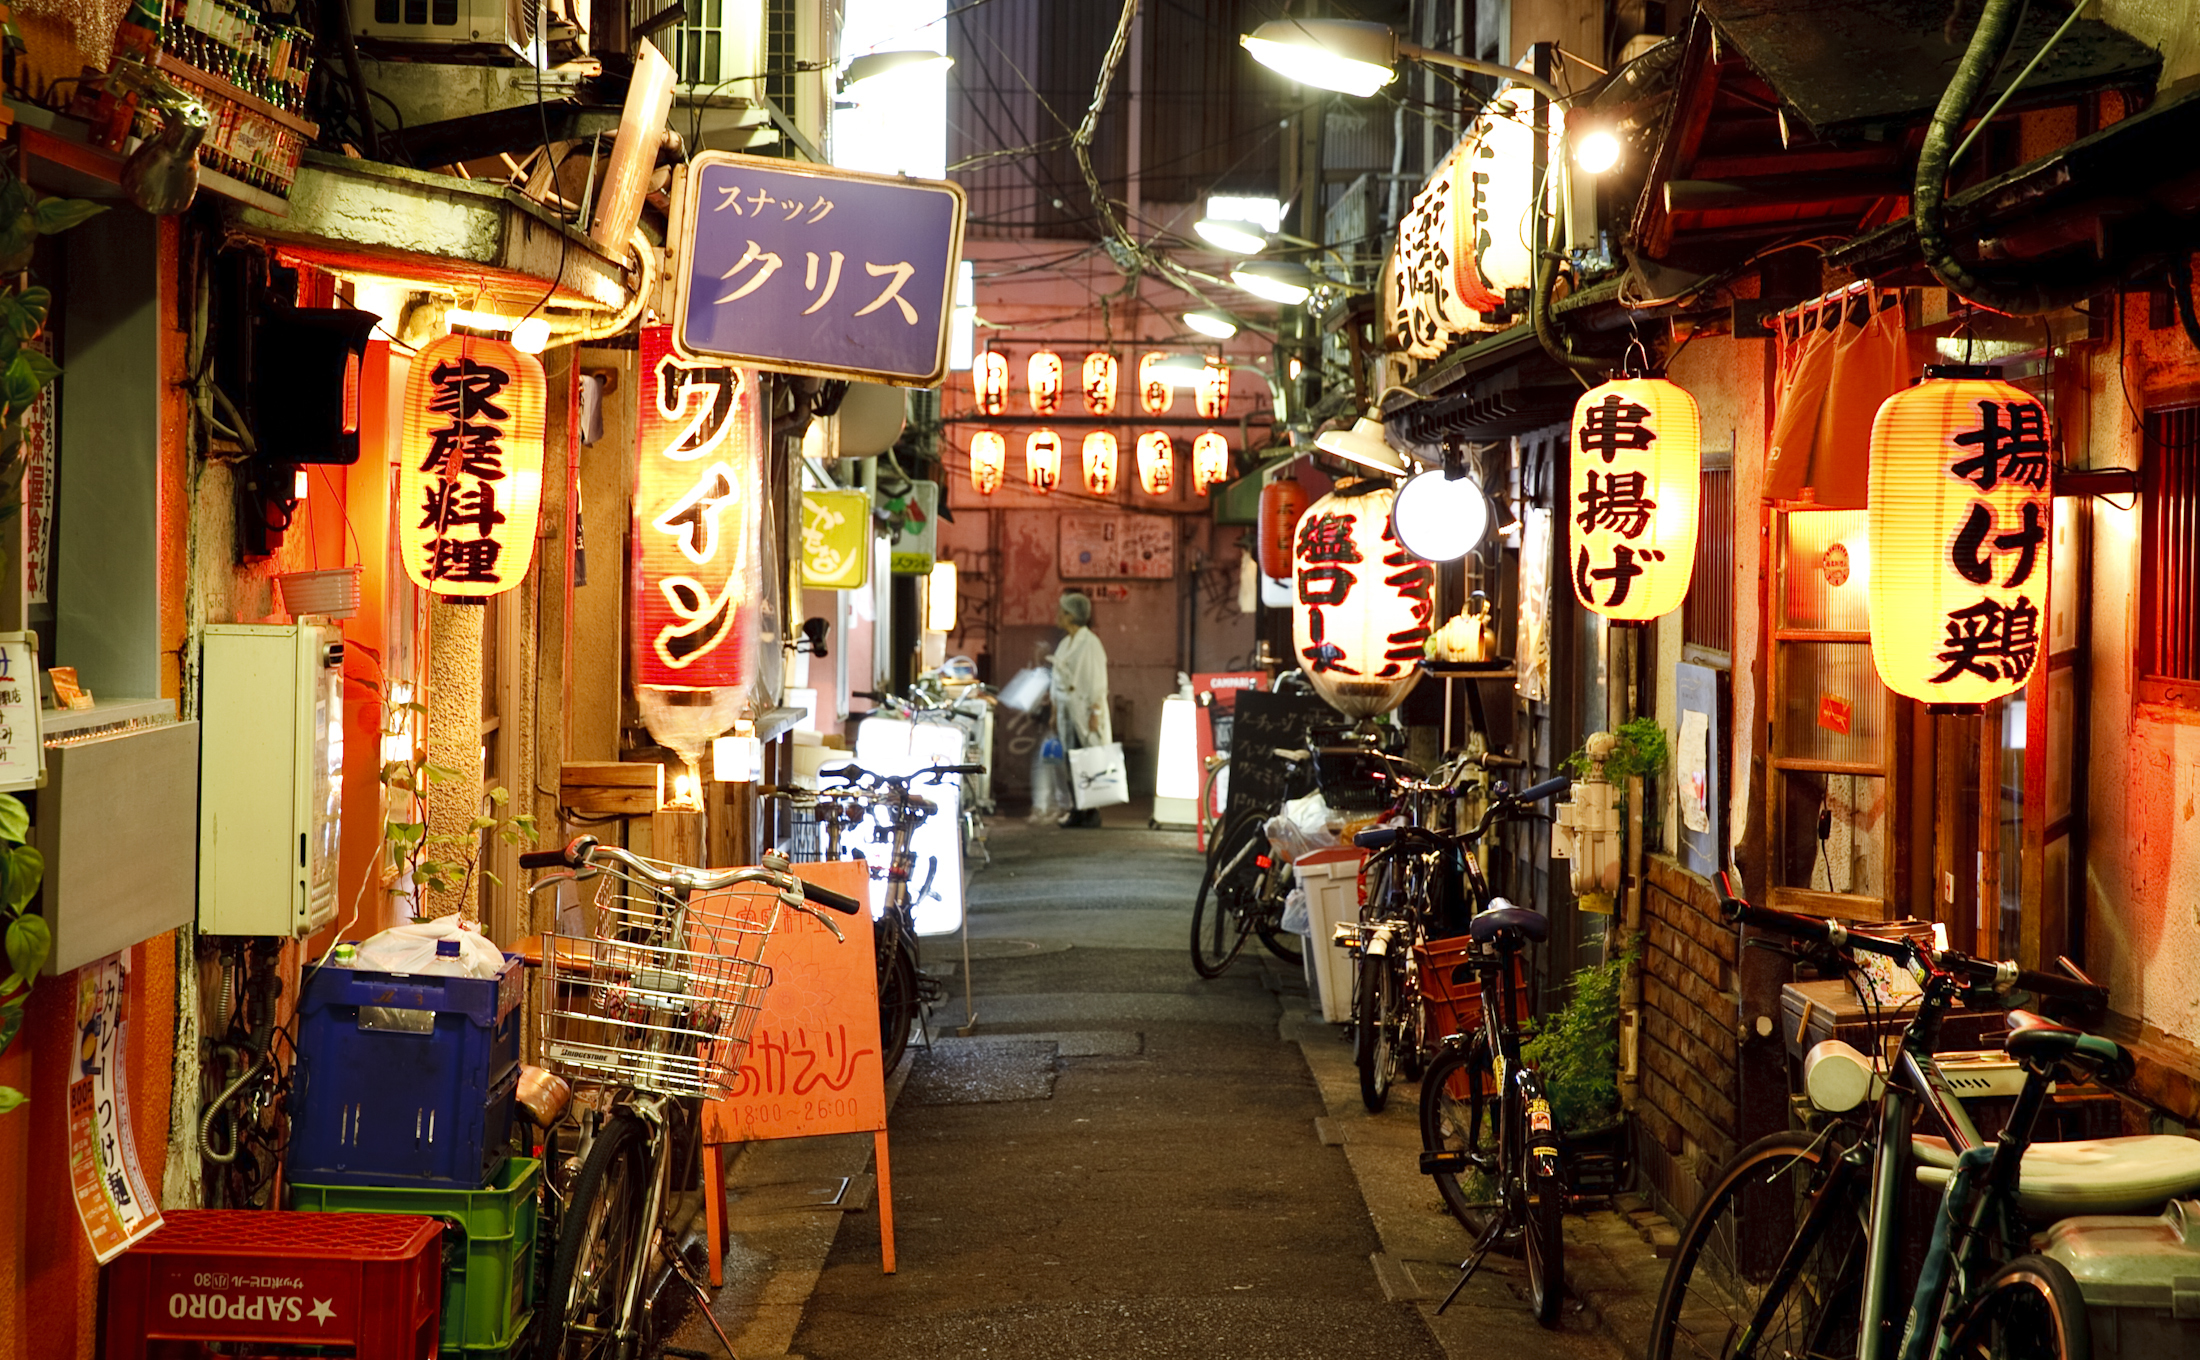 'Tokyo alleyway guide' from the web at 'https://media.timeout.com/images/102541625/image.jpg'